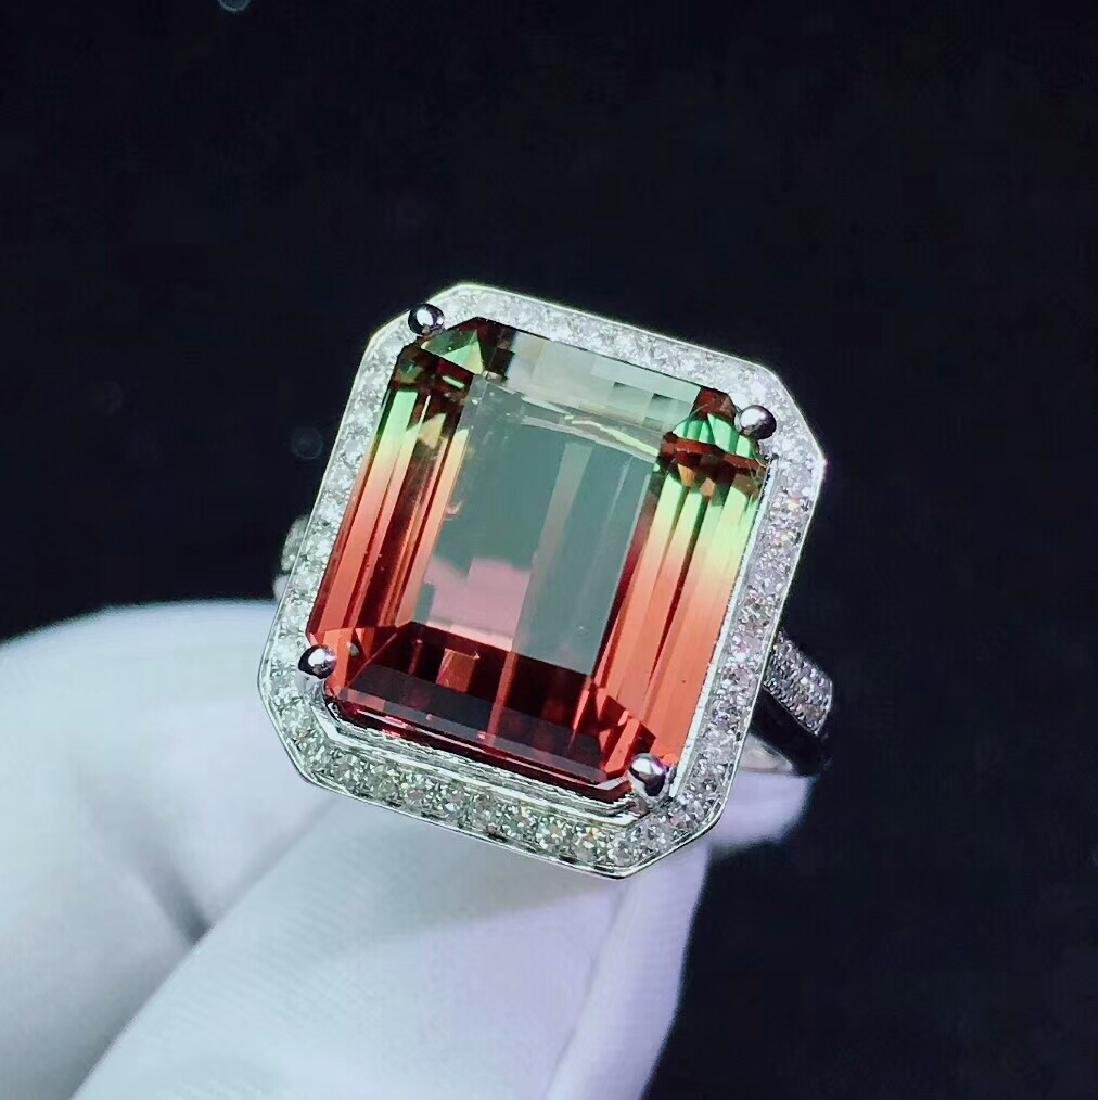 14.5ct Tourmaline Ring in 18kt white Gold - 2